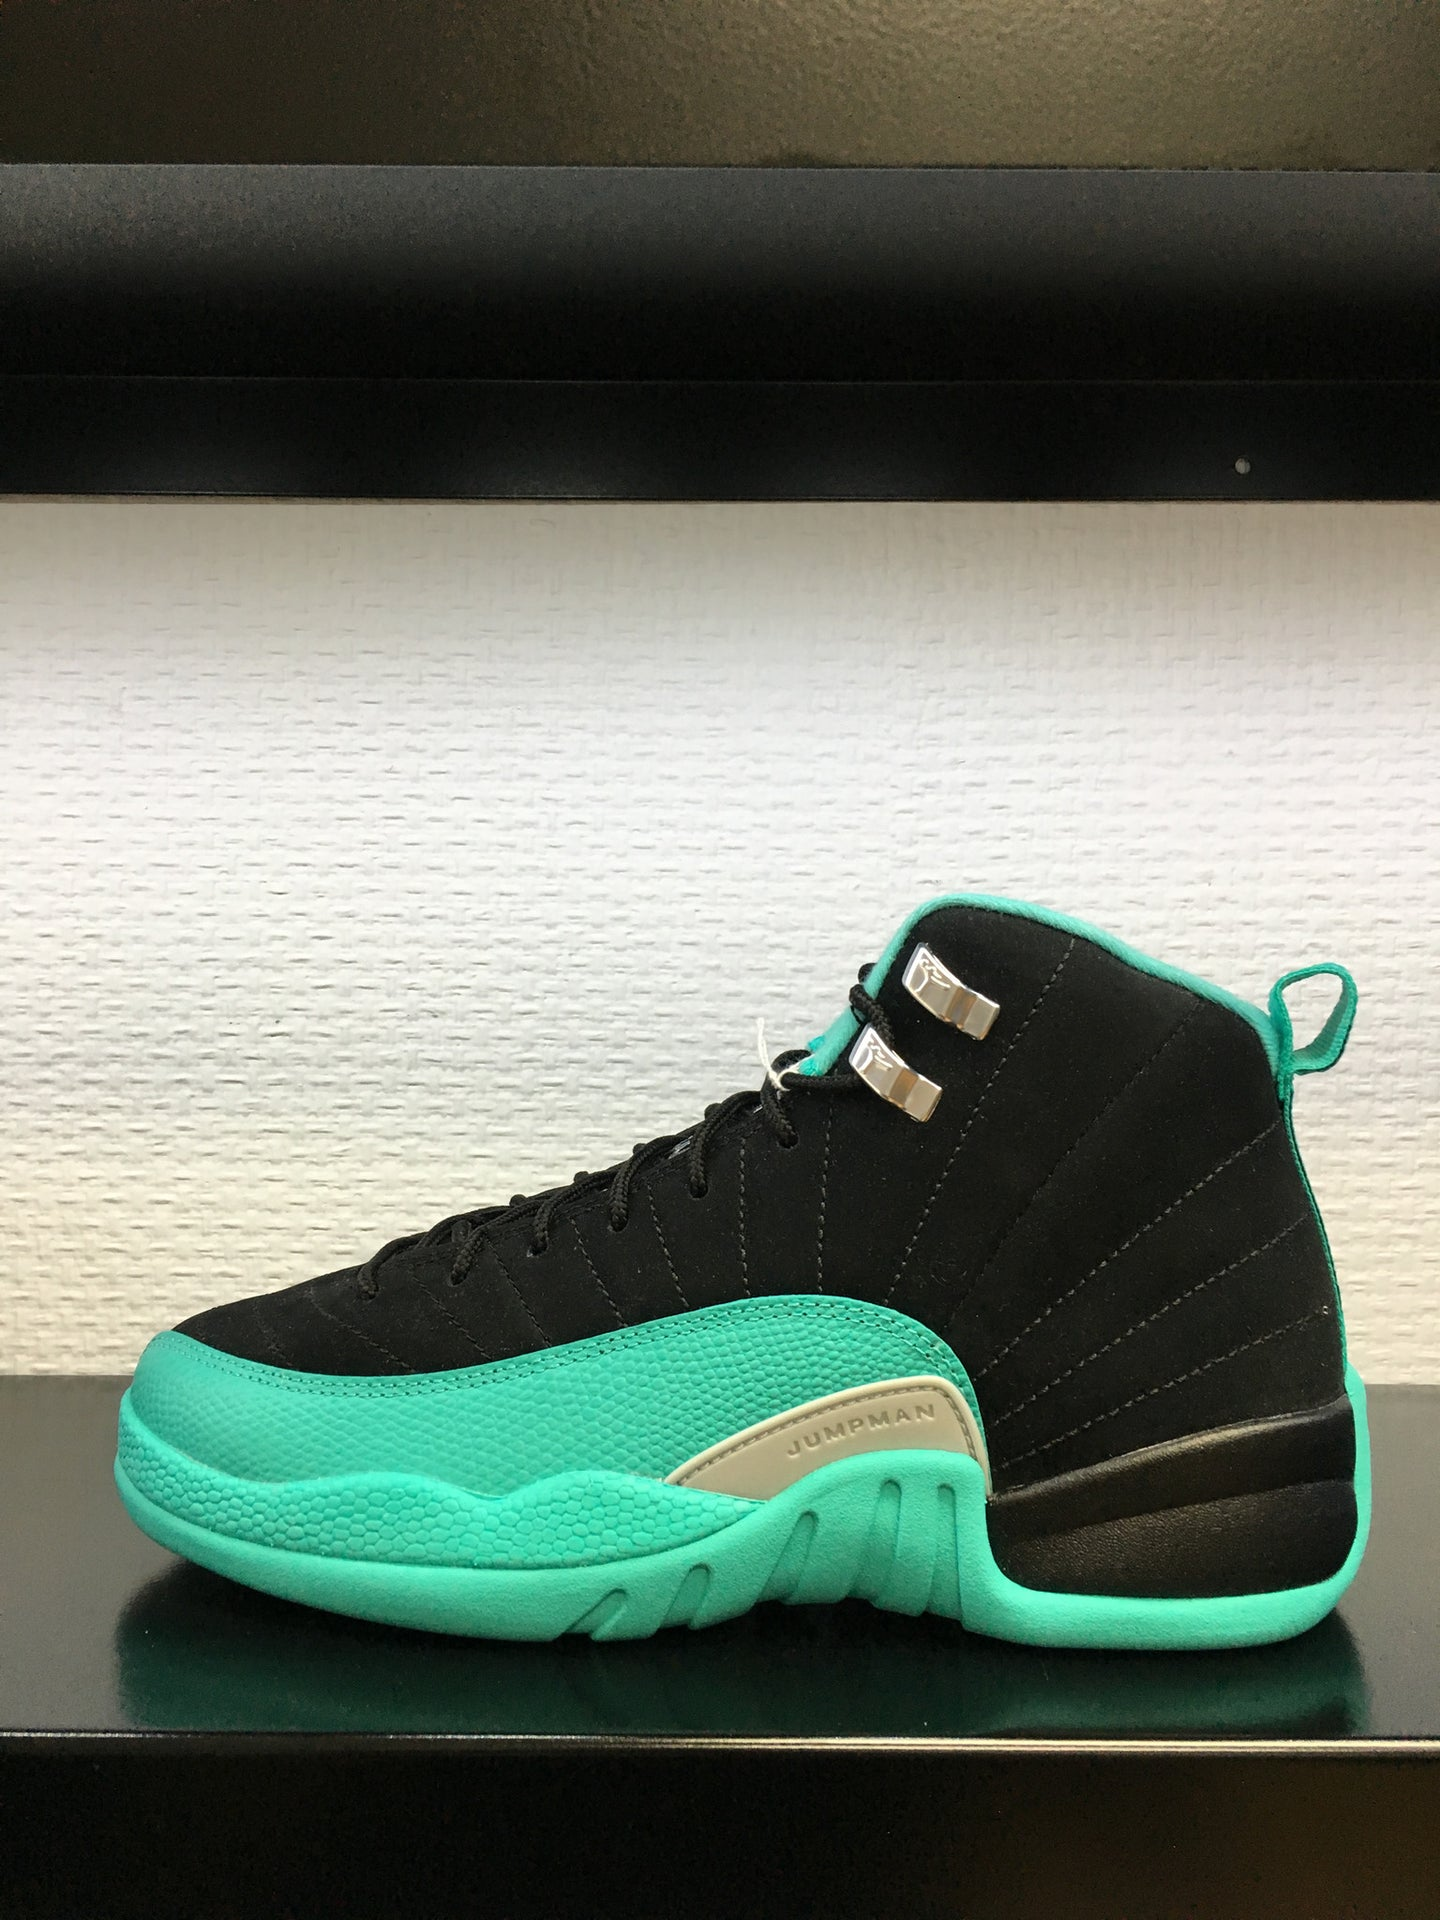 Air Jordan 12 Retro GG-Hyper Jade